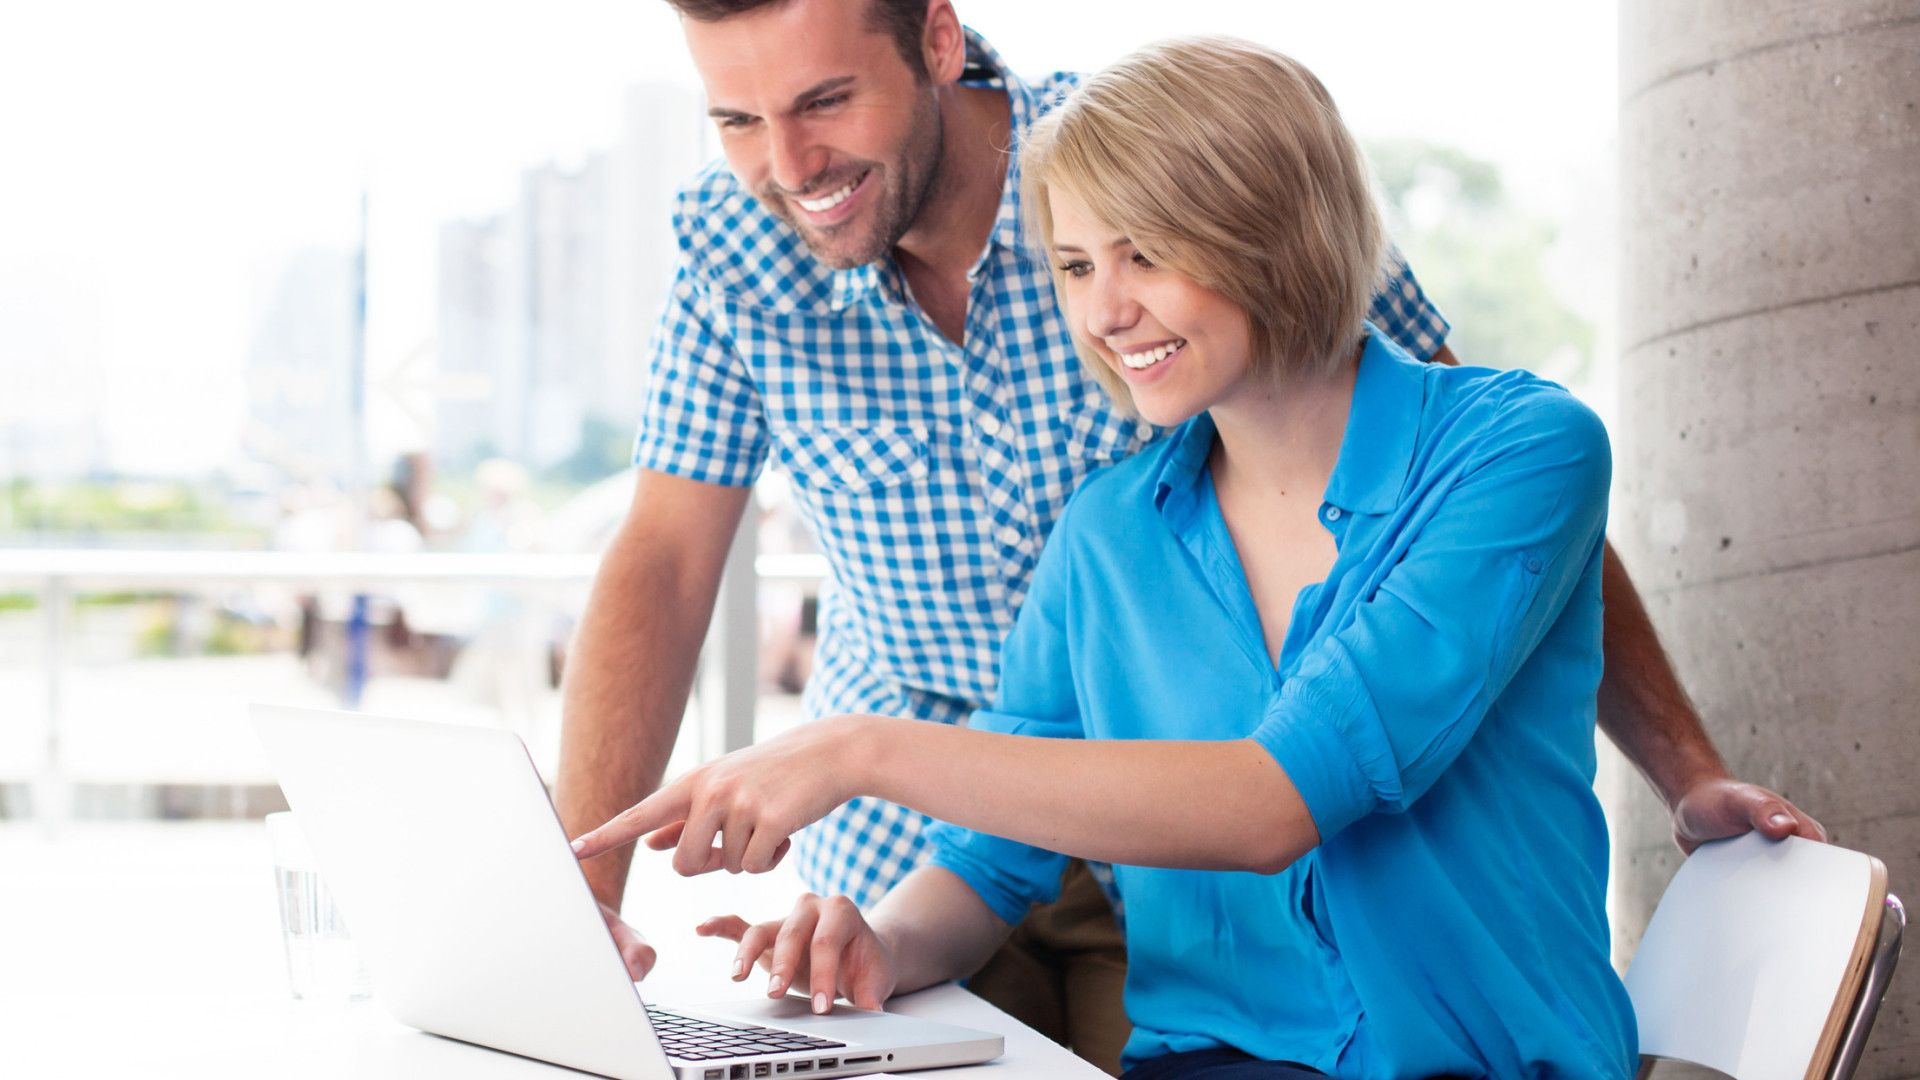 1 hour is the easy and quick way of borrowing additional money in out any lengthy procedure then apply applying for quick debit card loans if you own a debit card on your then you can get fast cash